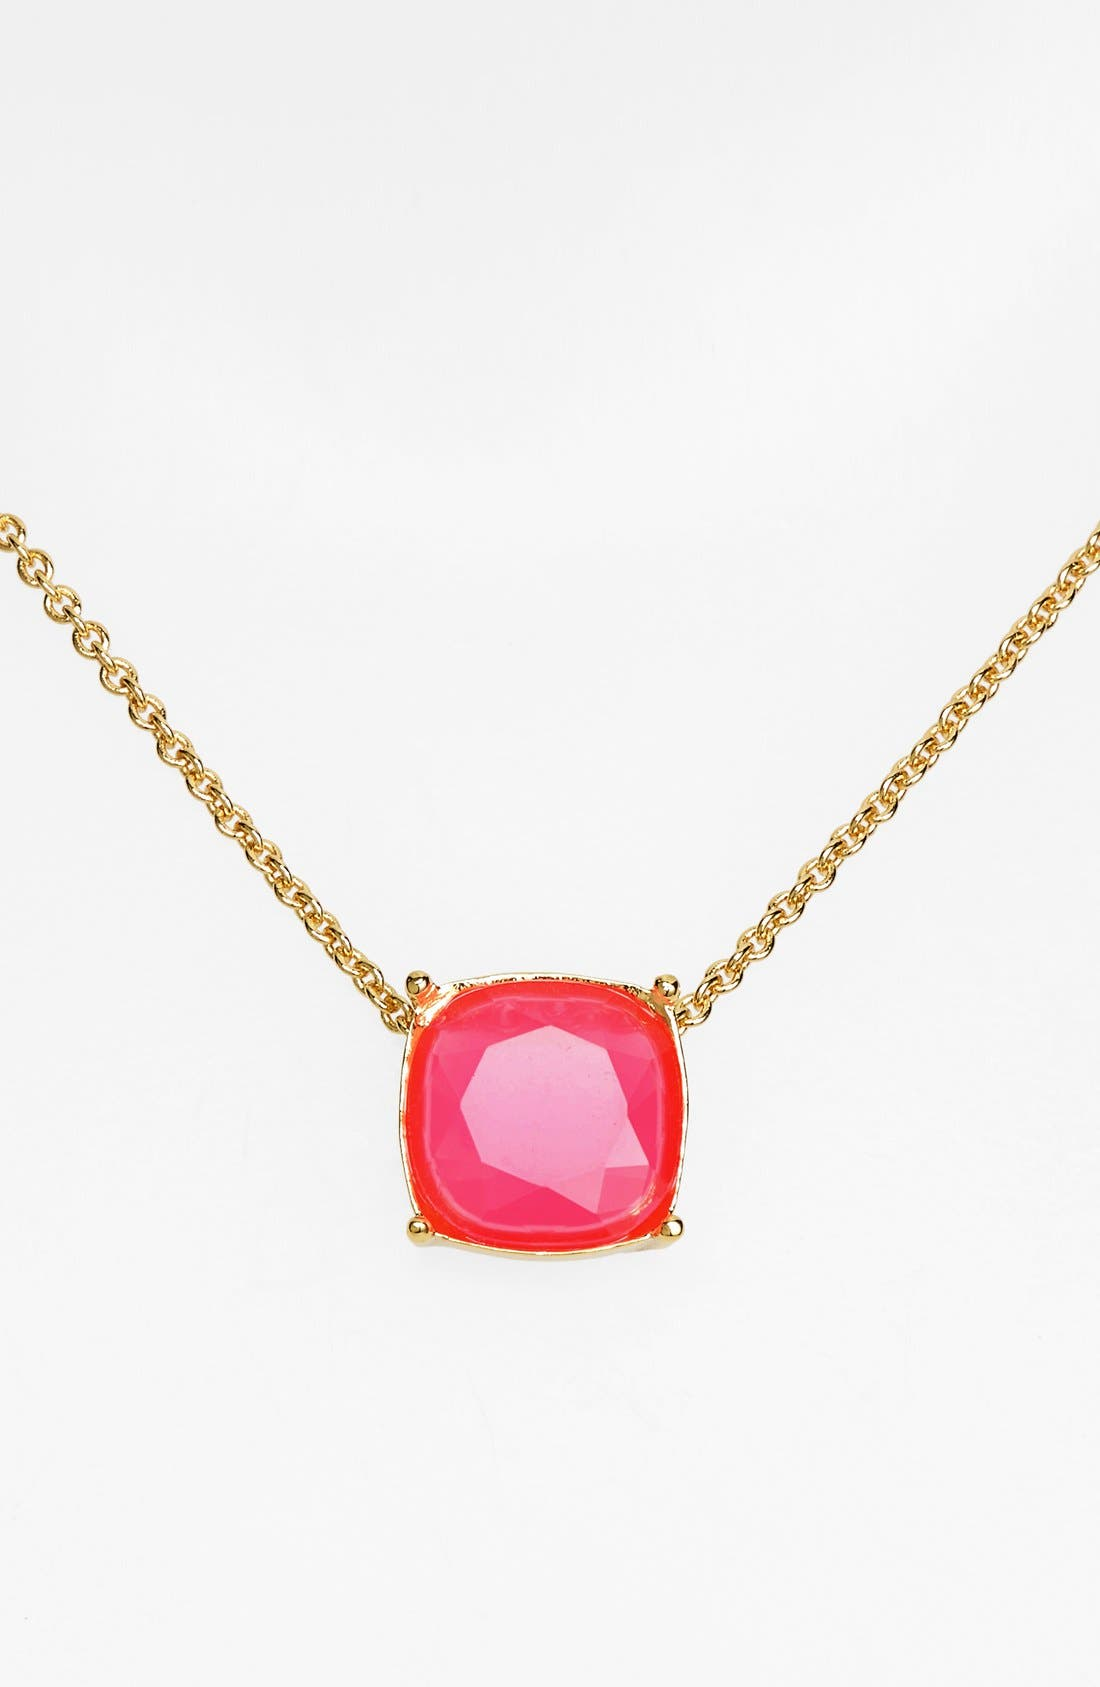 Alternate Image 1 Selected - kate spade new york 'cause a stir' stone pendant necklace